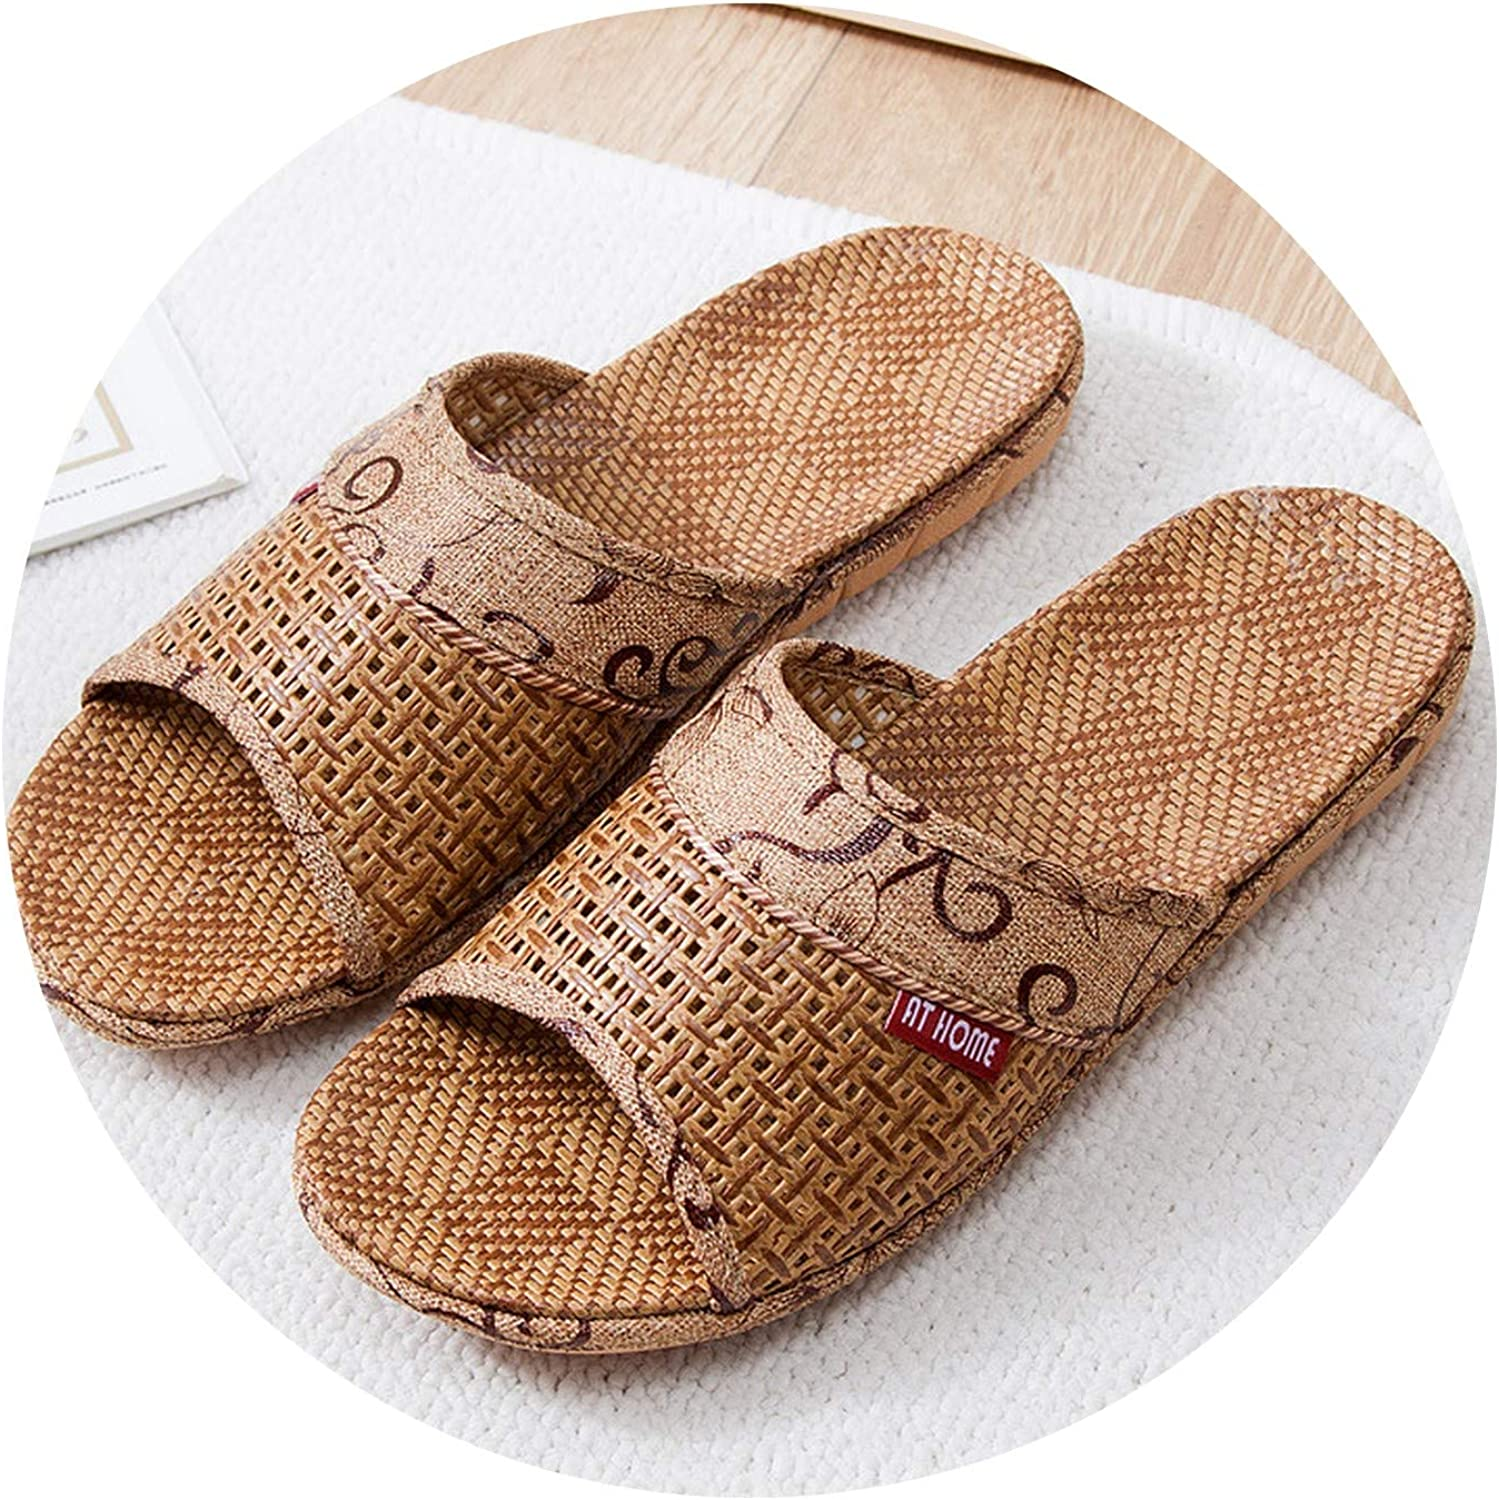 Ablaze Jin mens slippers Home Breathable Indoor Floor Beach Slides Boys Gift Flat Shoes